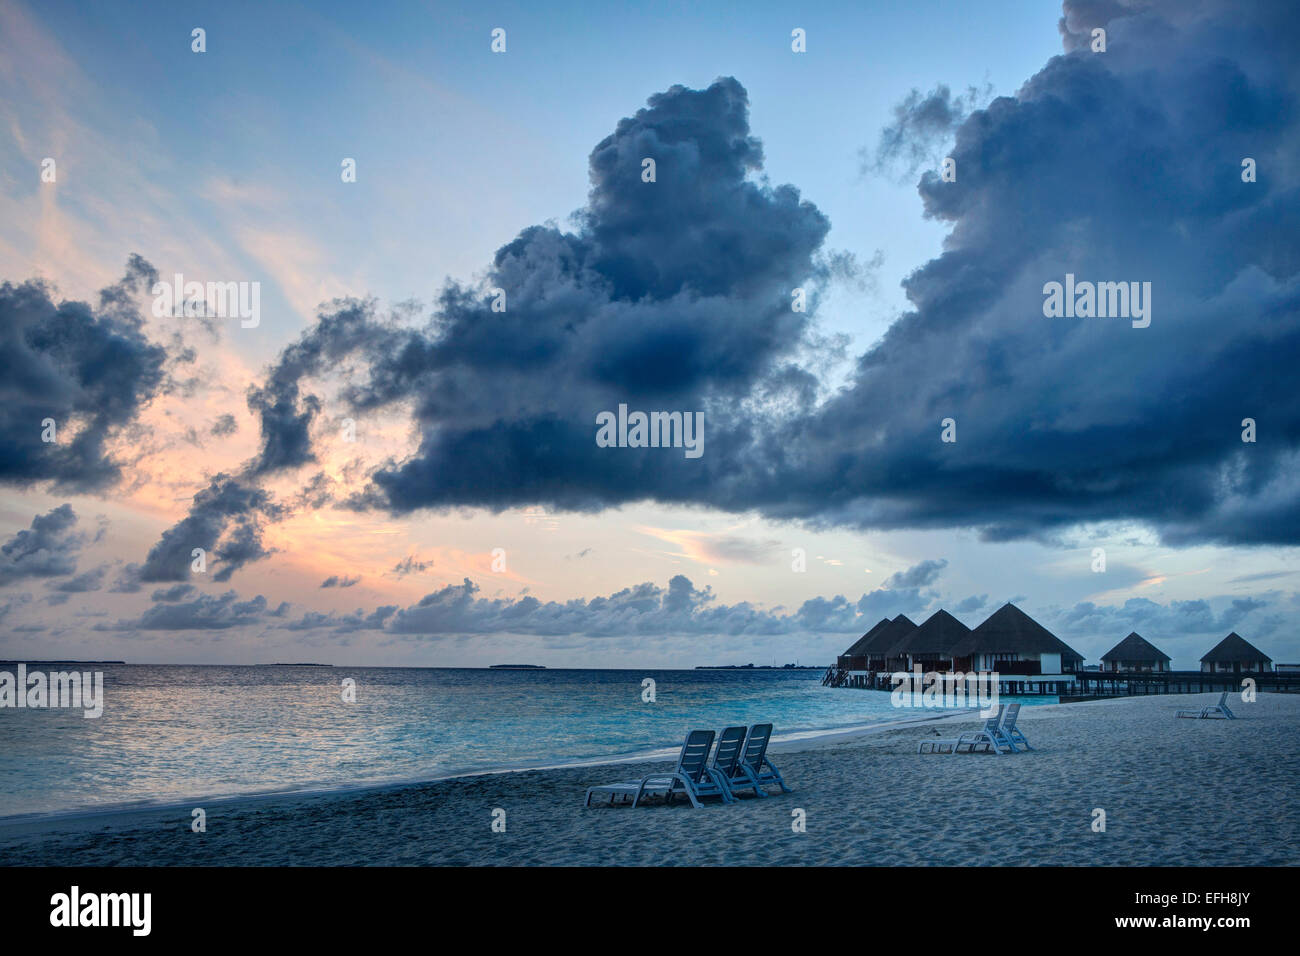 Sunset over a beach on an Island in The Maldives - Stock Image